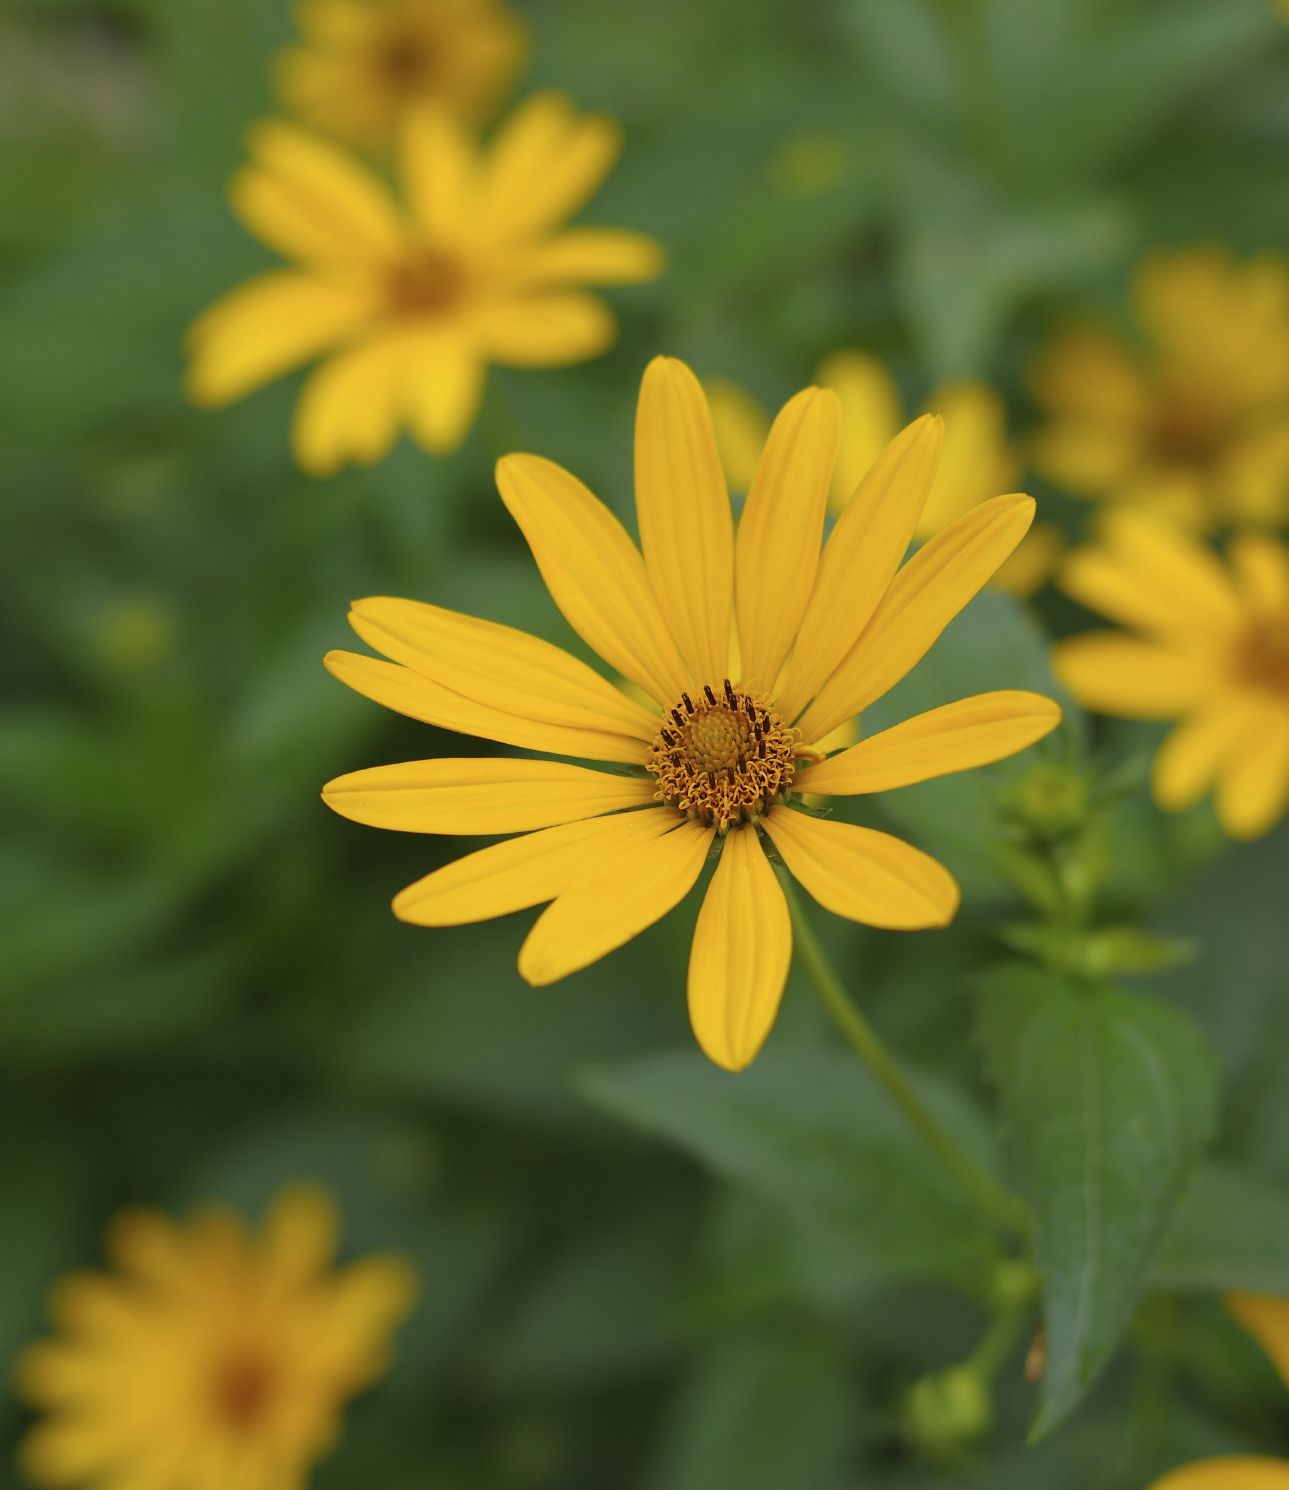 Heliopsis requires very little maintenance, but these impressive plants benefit from regular trimming and cutting back, as false sunflowers reach heights of 3 to 6 feet. Click this article to learn more about false sunflower pruning.